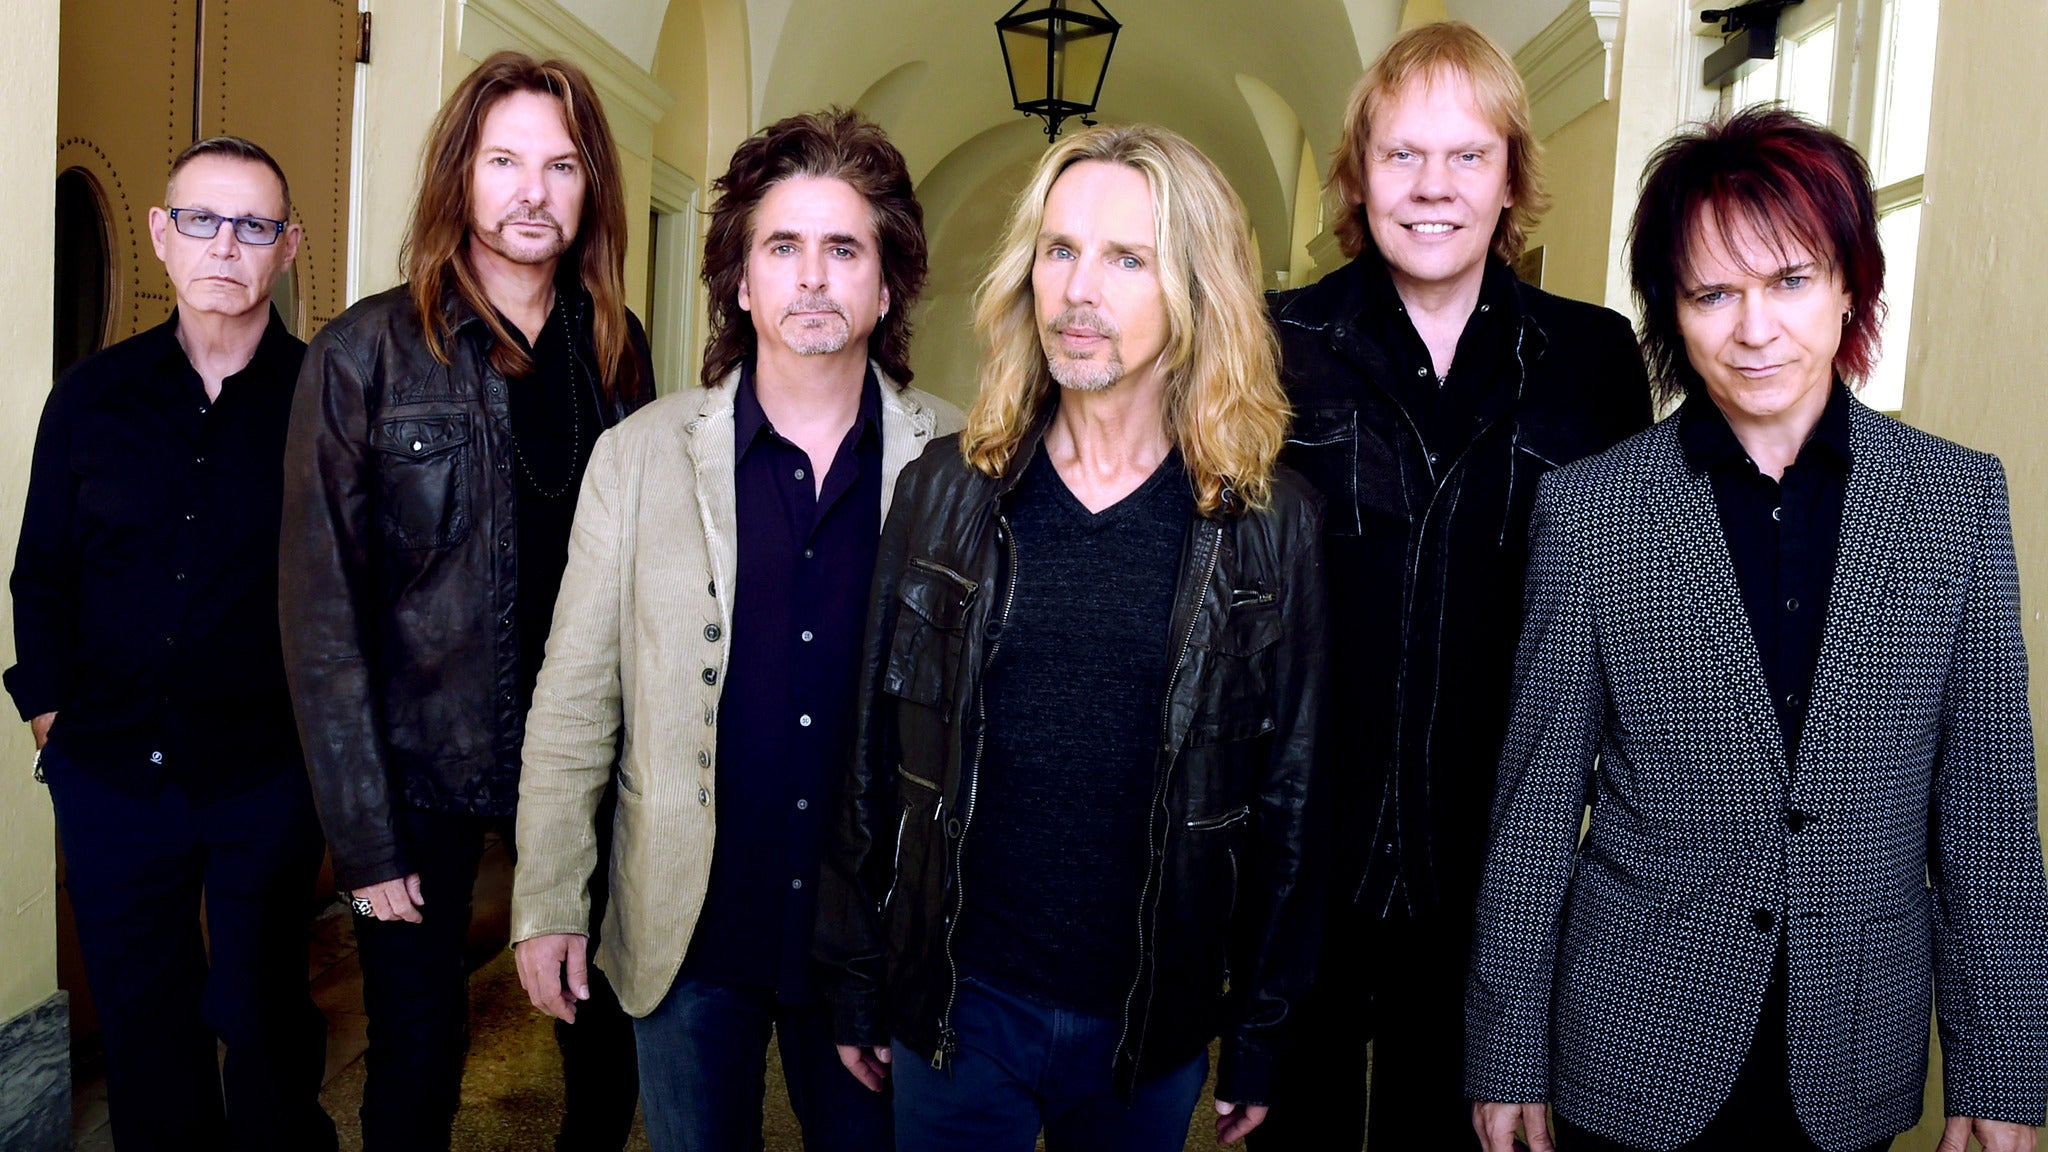 Styx at Verizon Center - Mankato, MN 56001